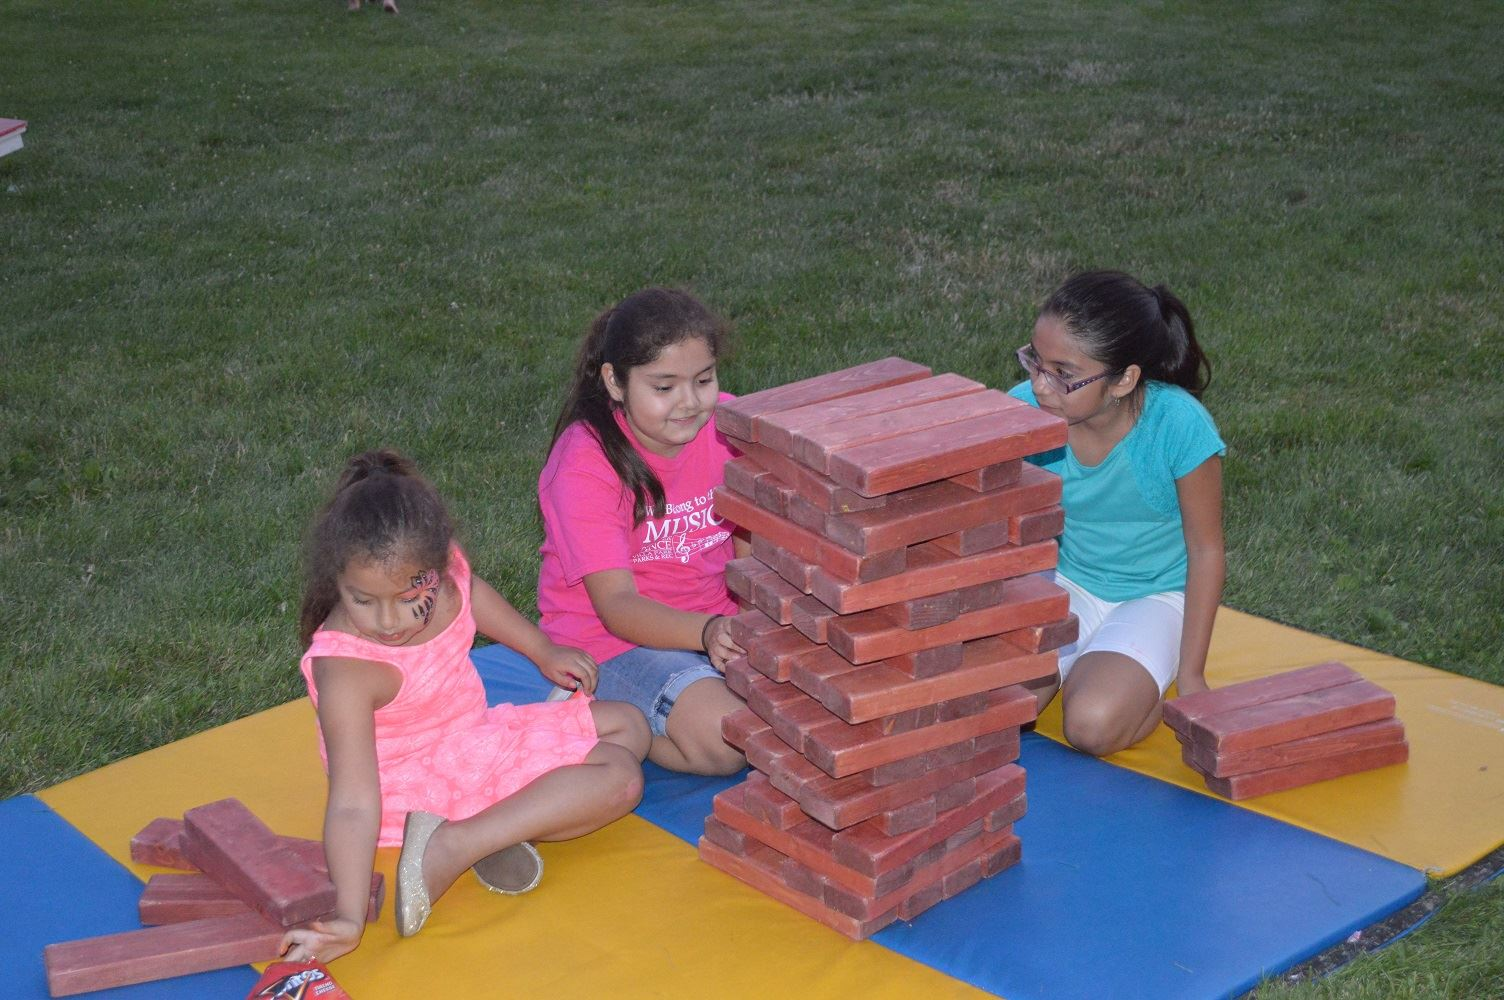 Children play life-sized Jenga at Villa Park's National Night Out event at the Iowa Community Center Aug. 2, 2016.